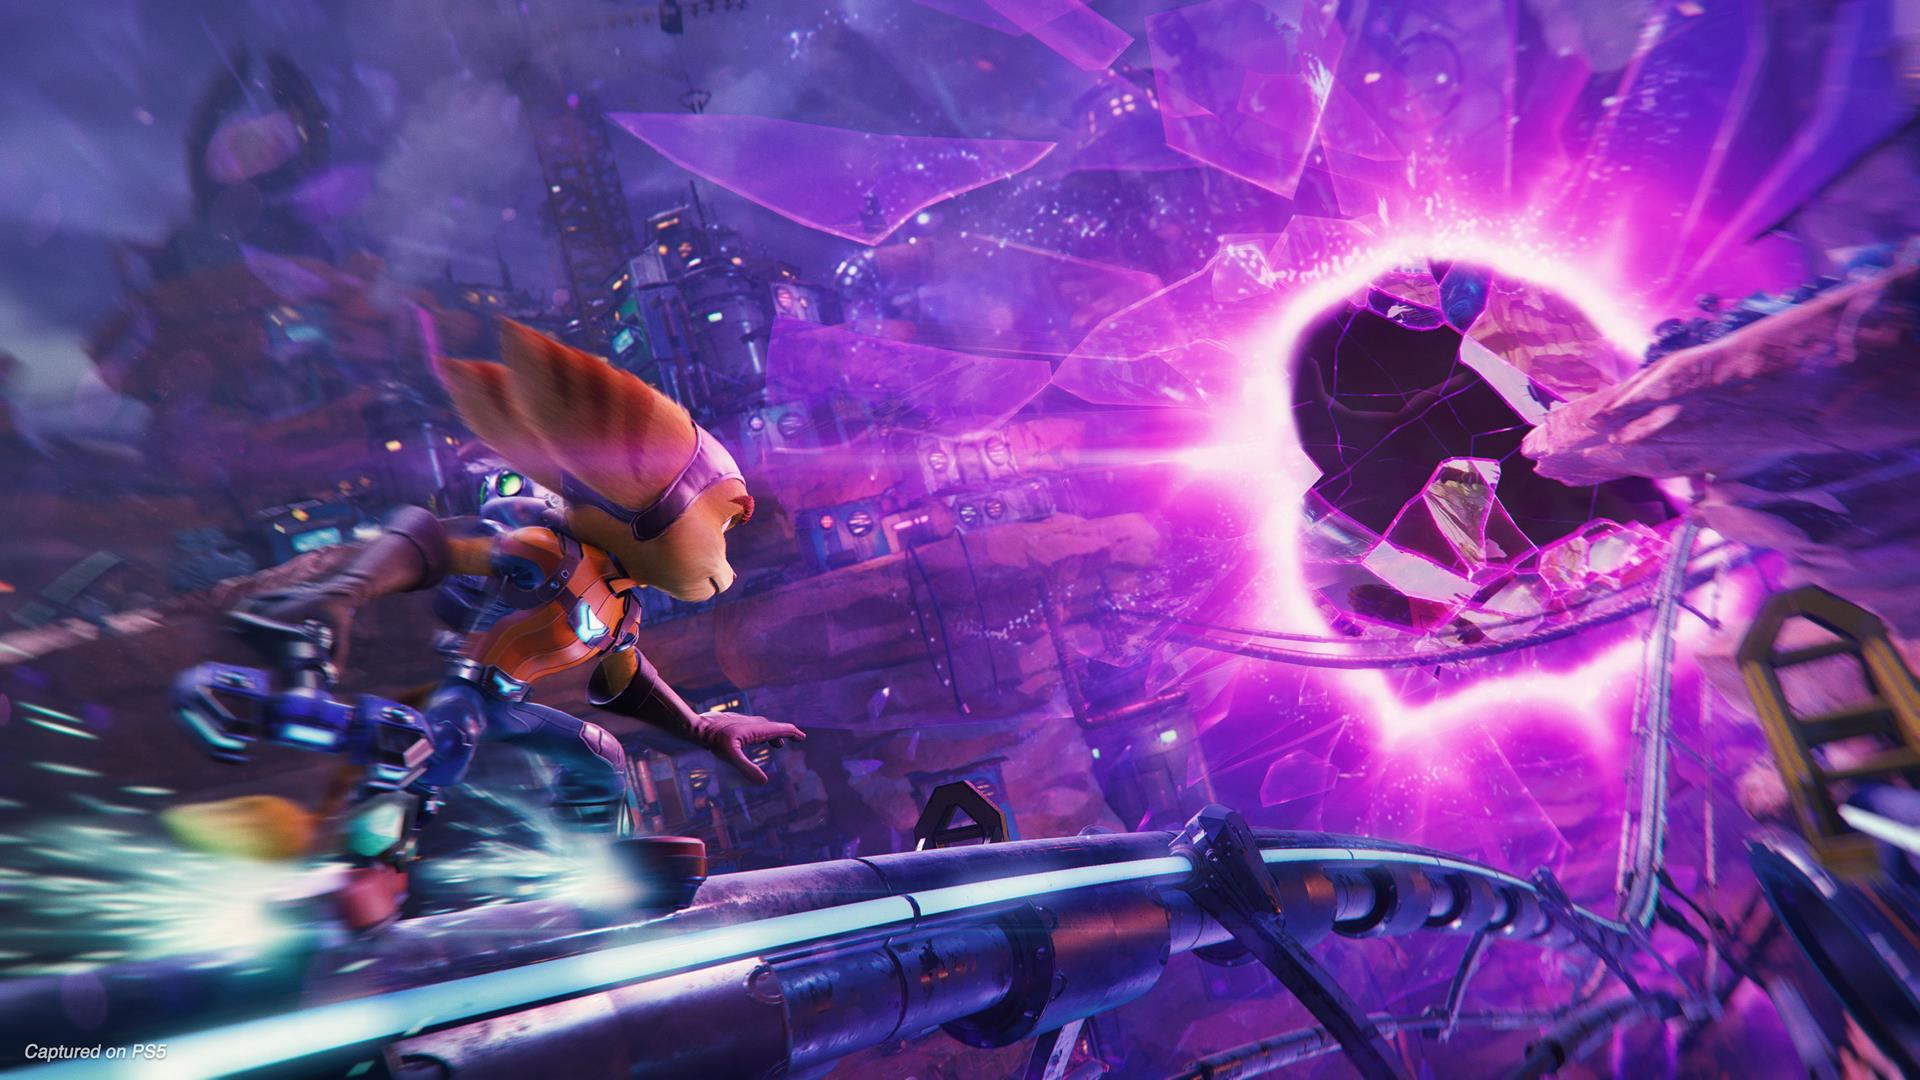 Ratchet & Clank: Rift Apart announced for PS5 - VG247